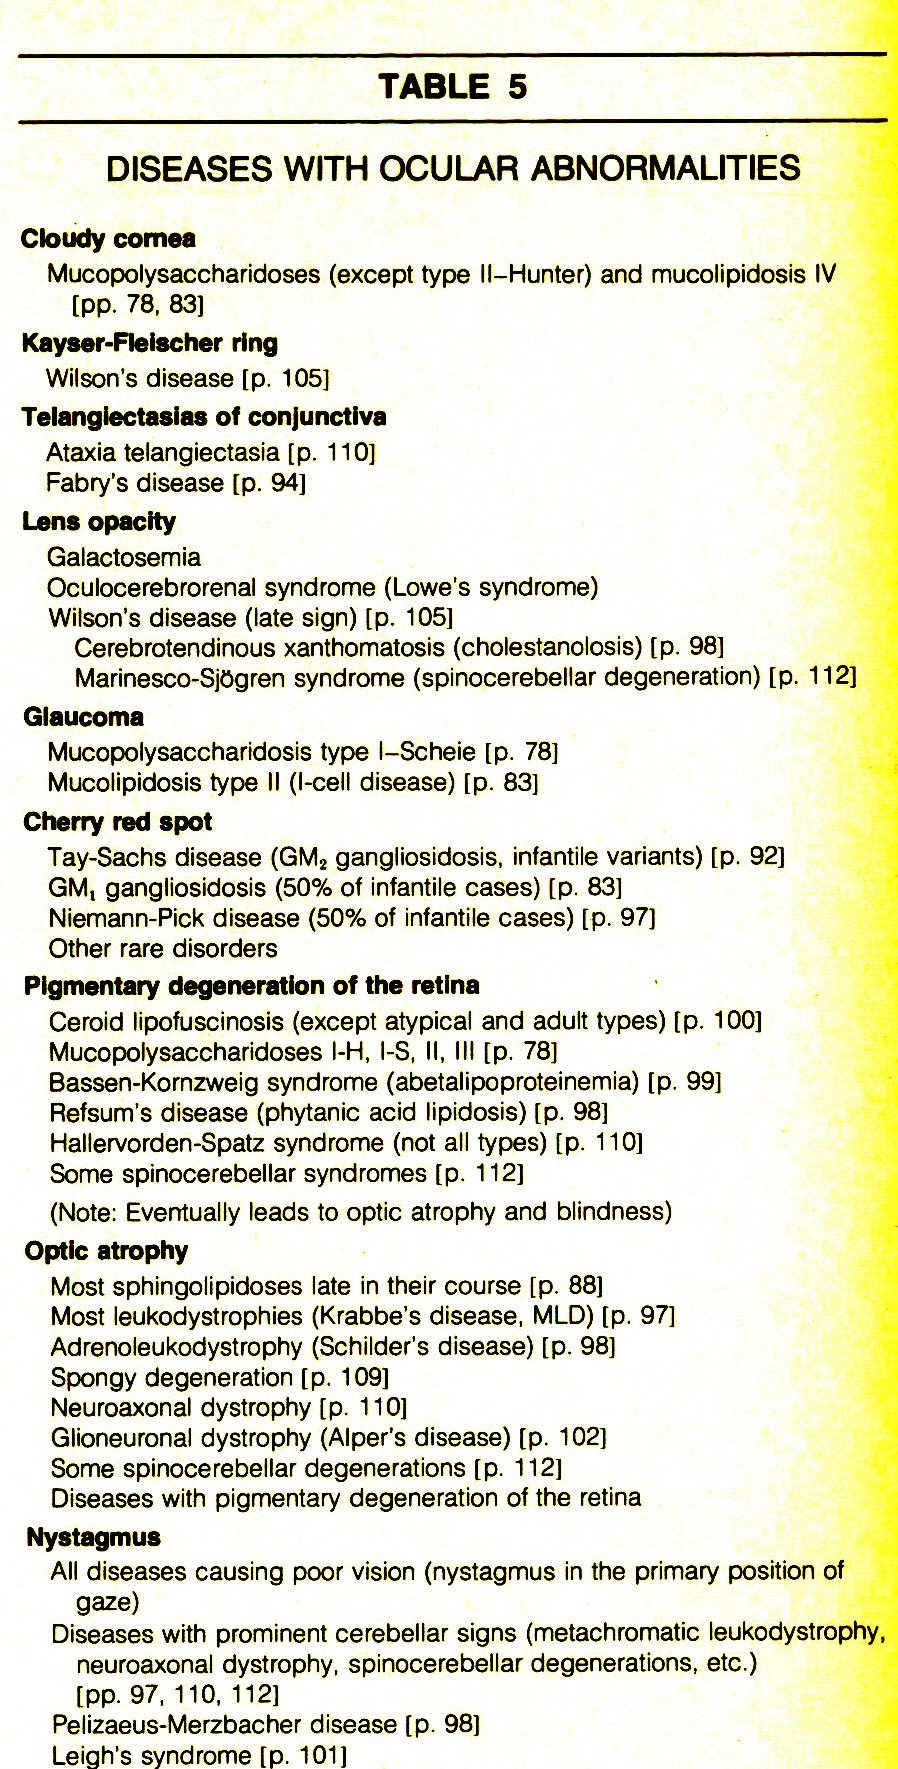 TABLE 5DISEASES WITH OCULAR ABNORMALITIES